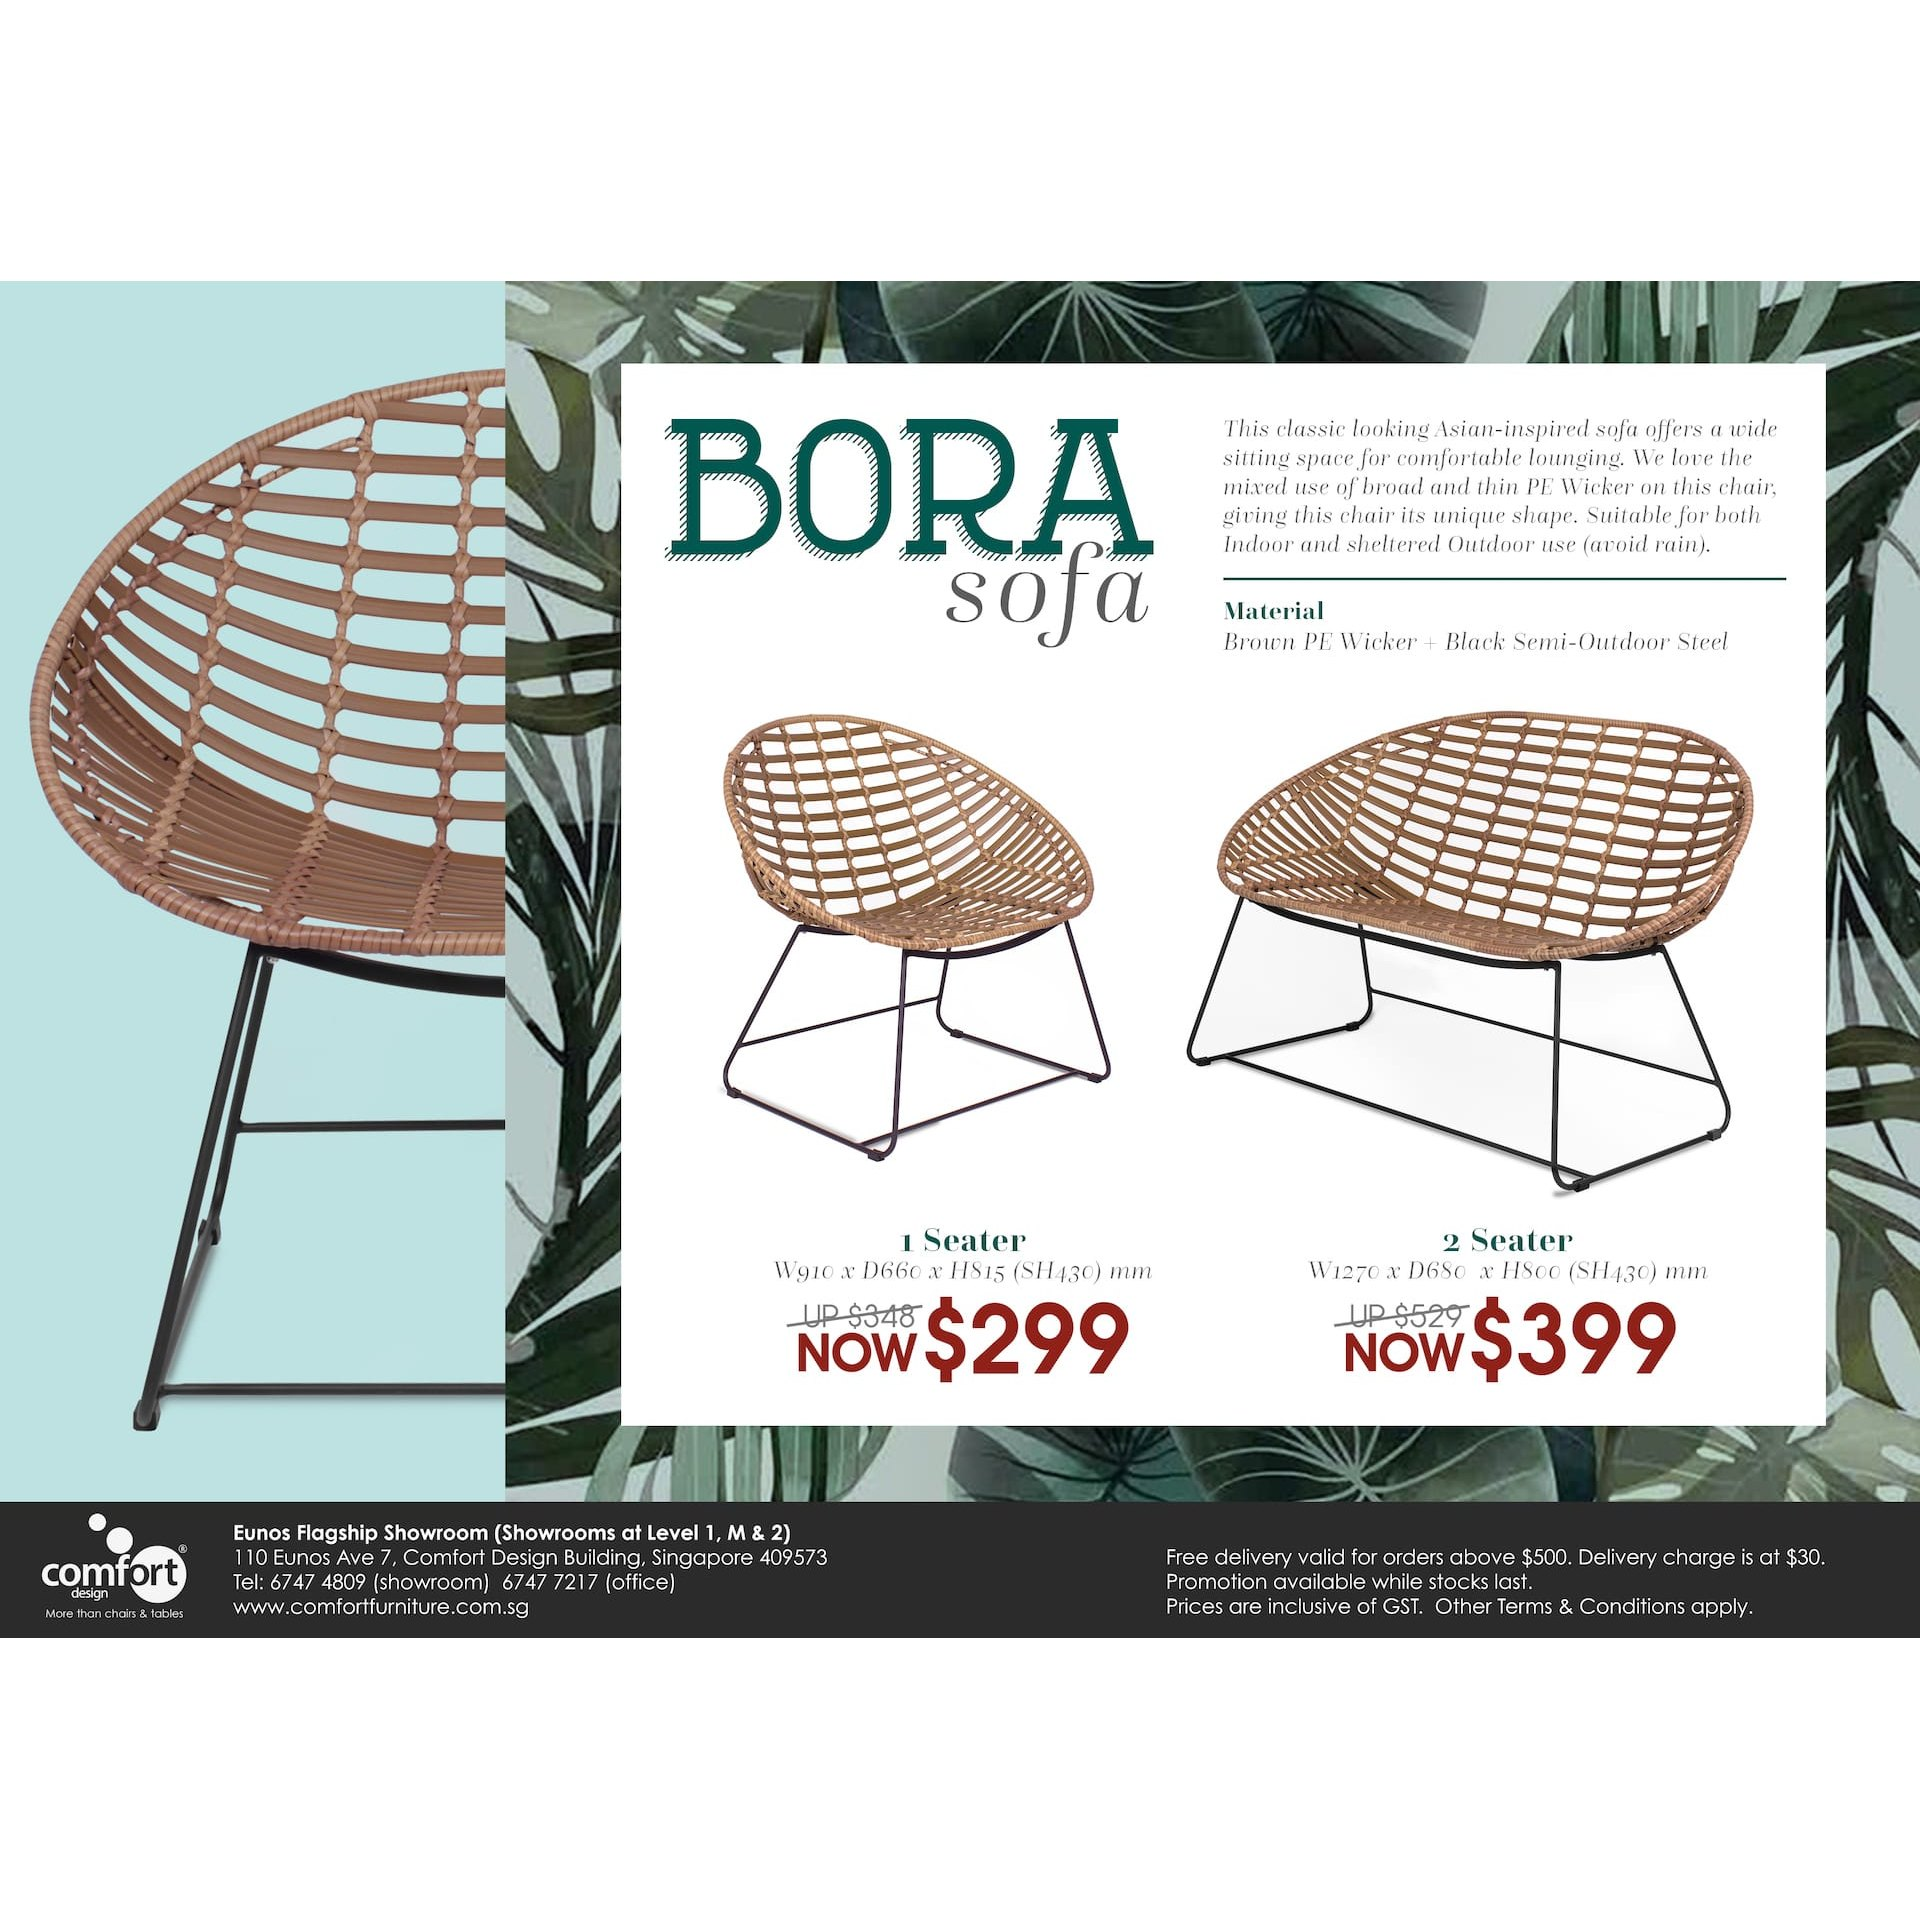 Bora Outdoor 2 Seater Sofa Comfort Design The Chair Table People